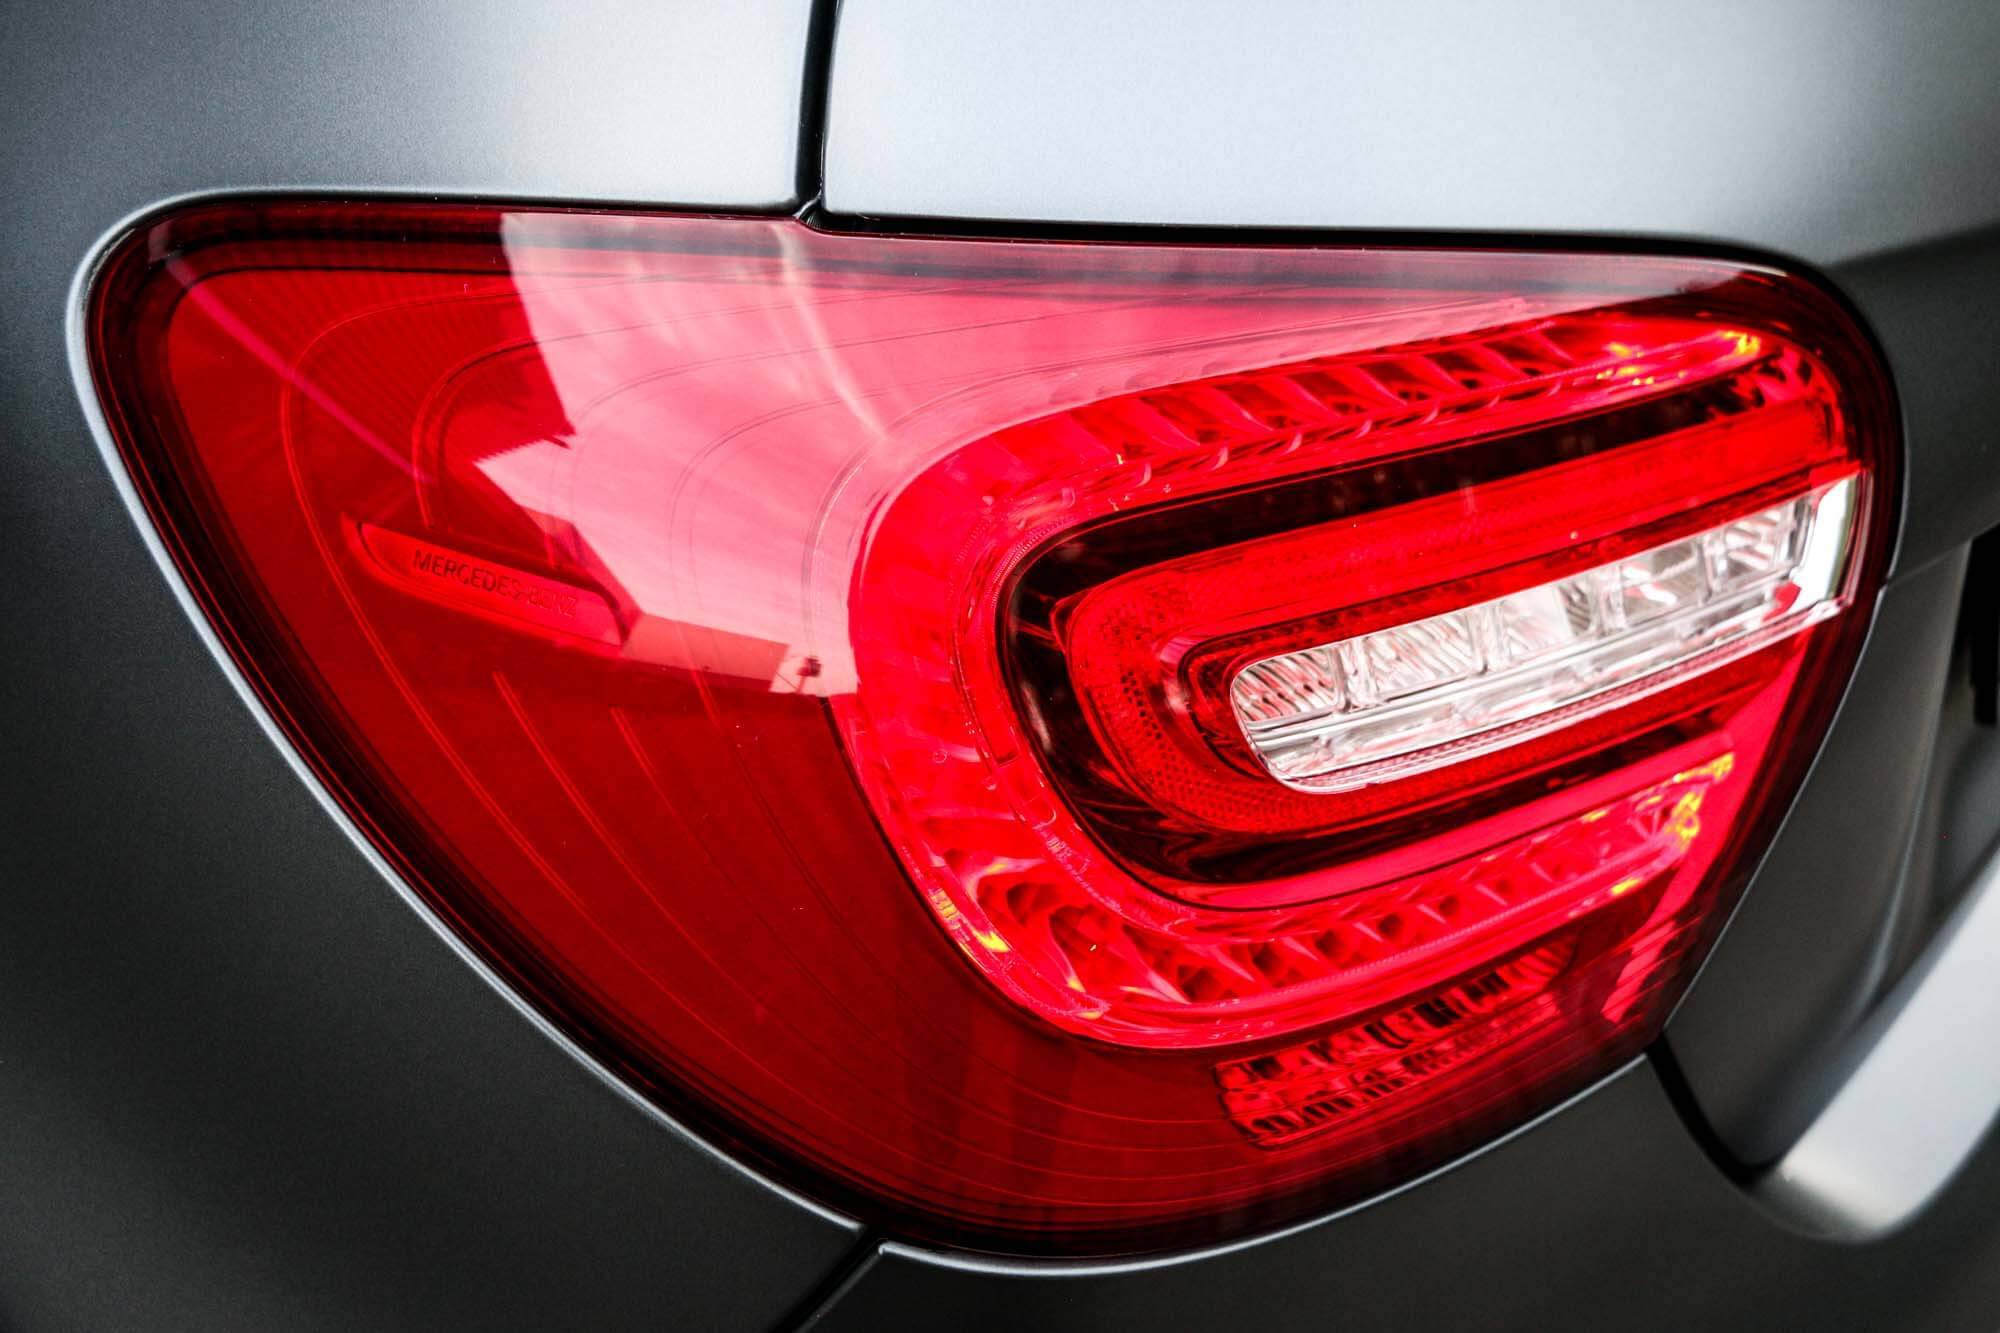 PURE_A45AMG-39